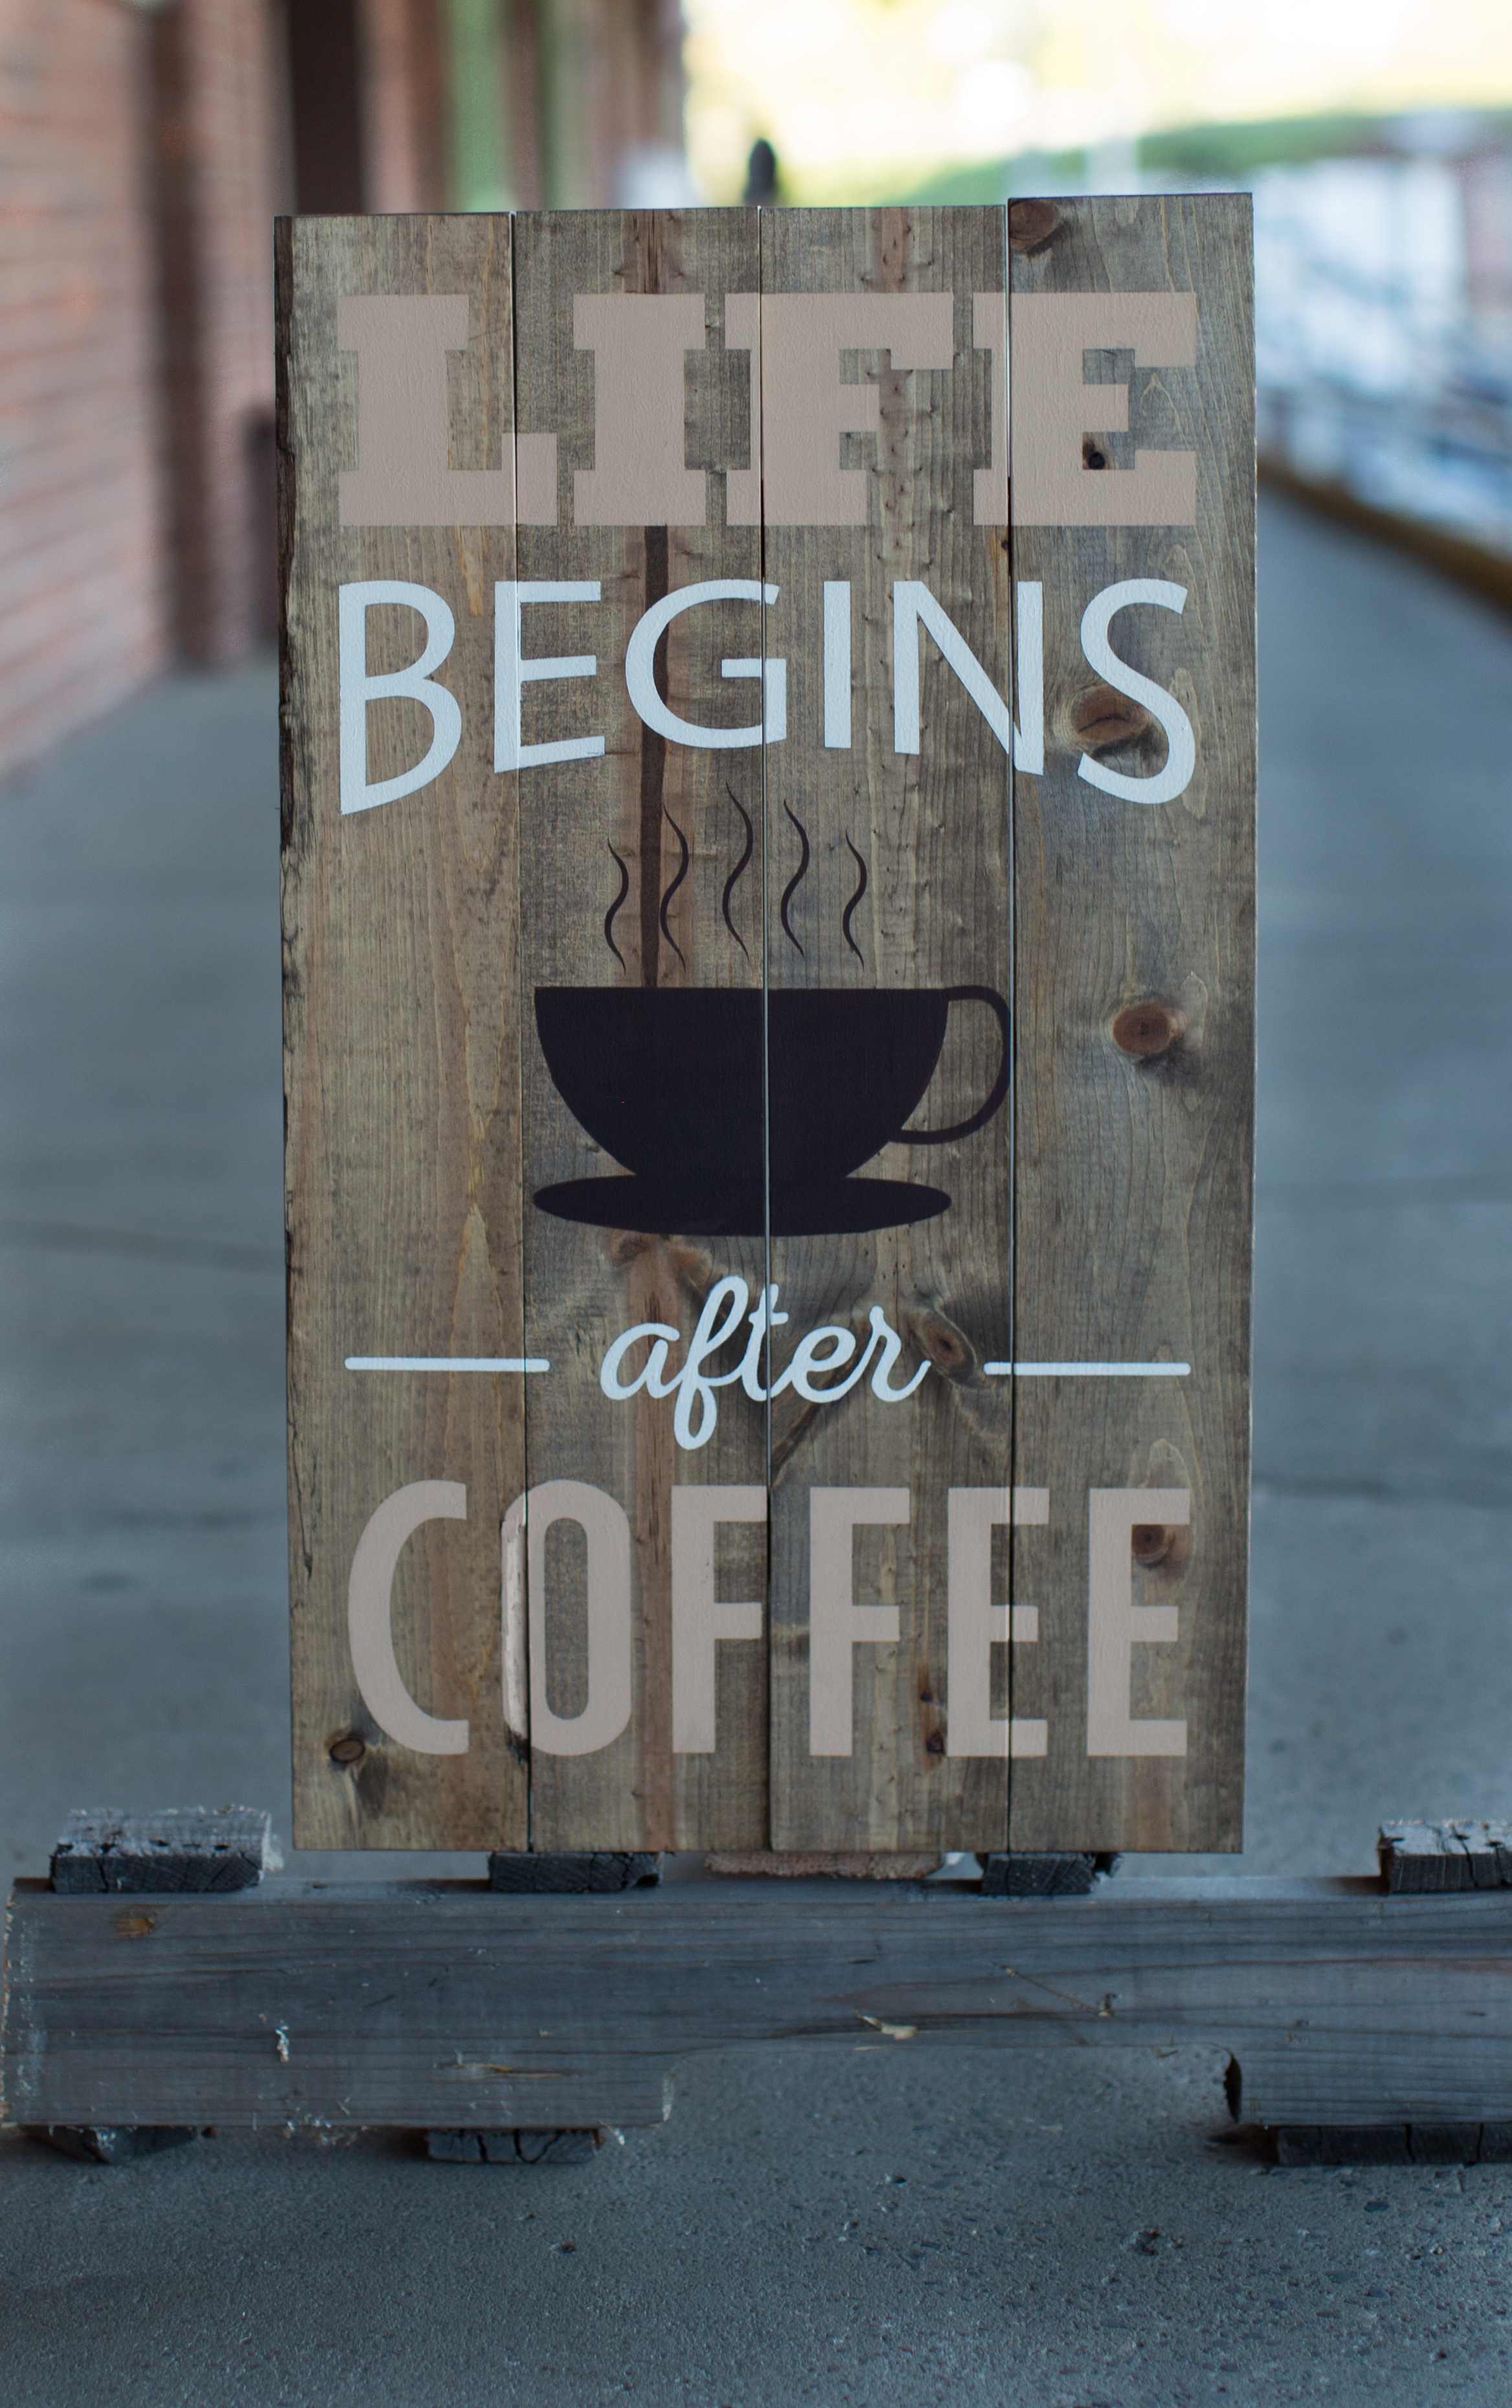 37) Life Begins After Coffee